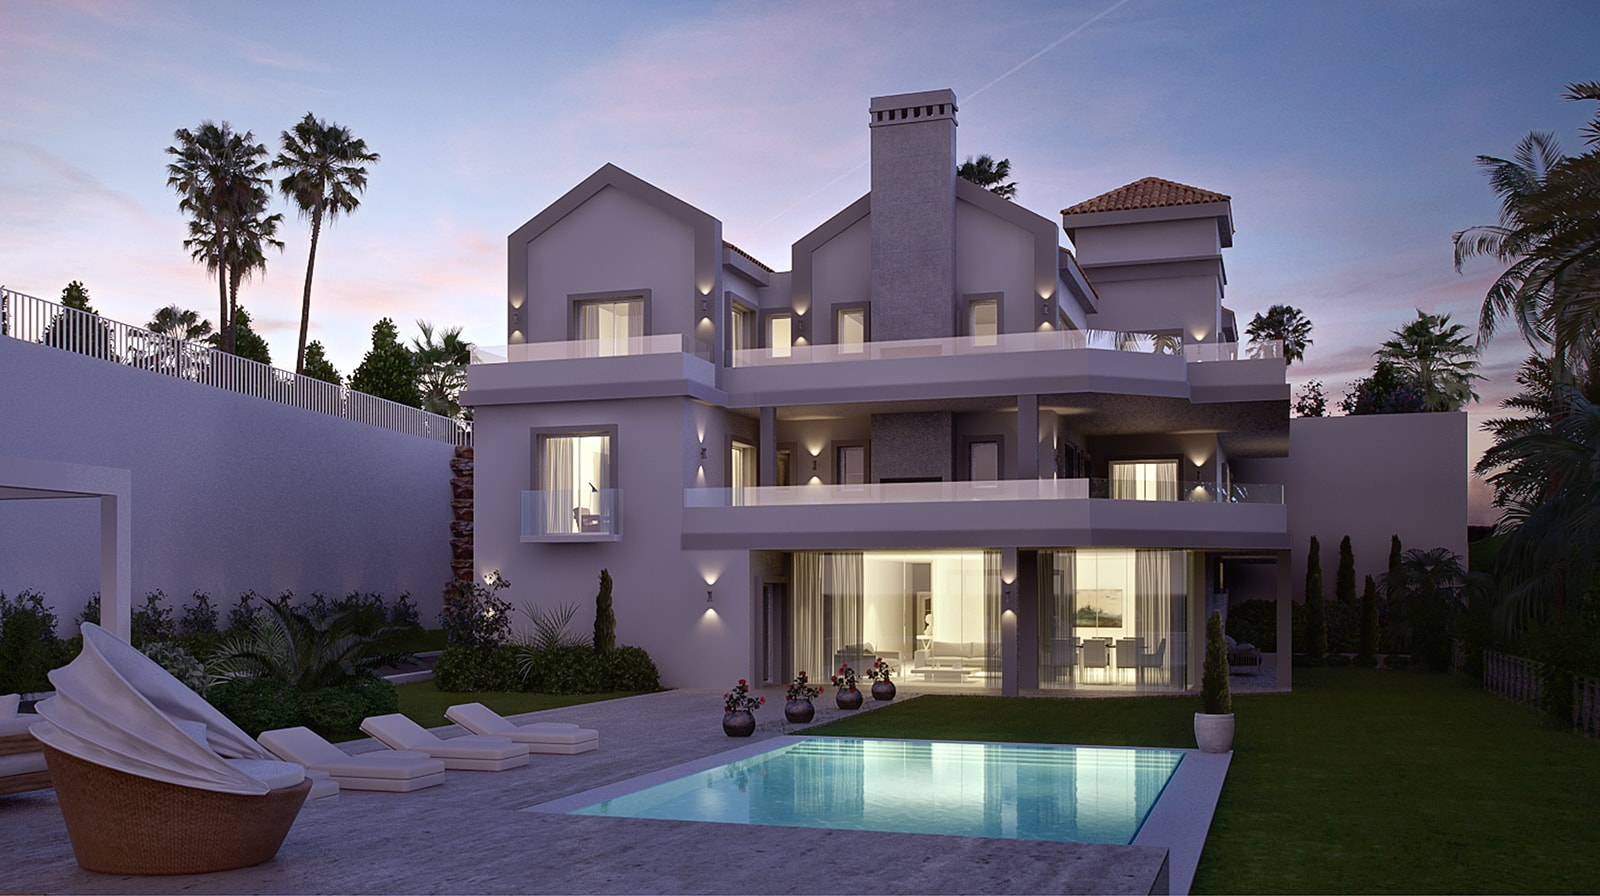 Private Multilevel Villa exterior